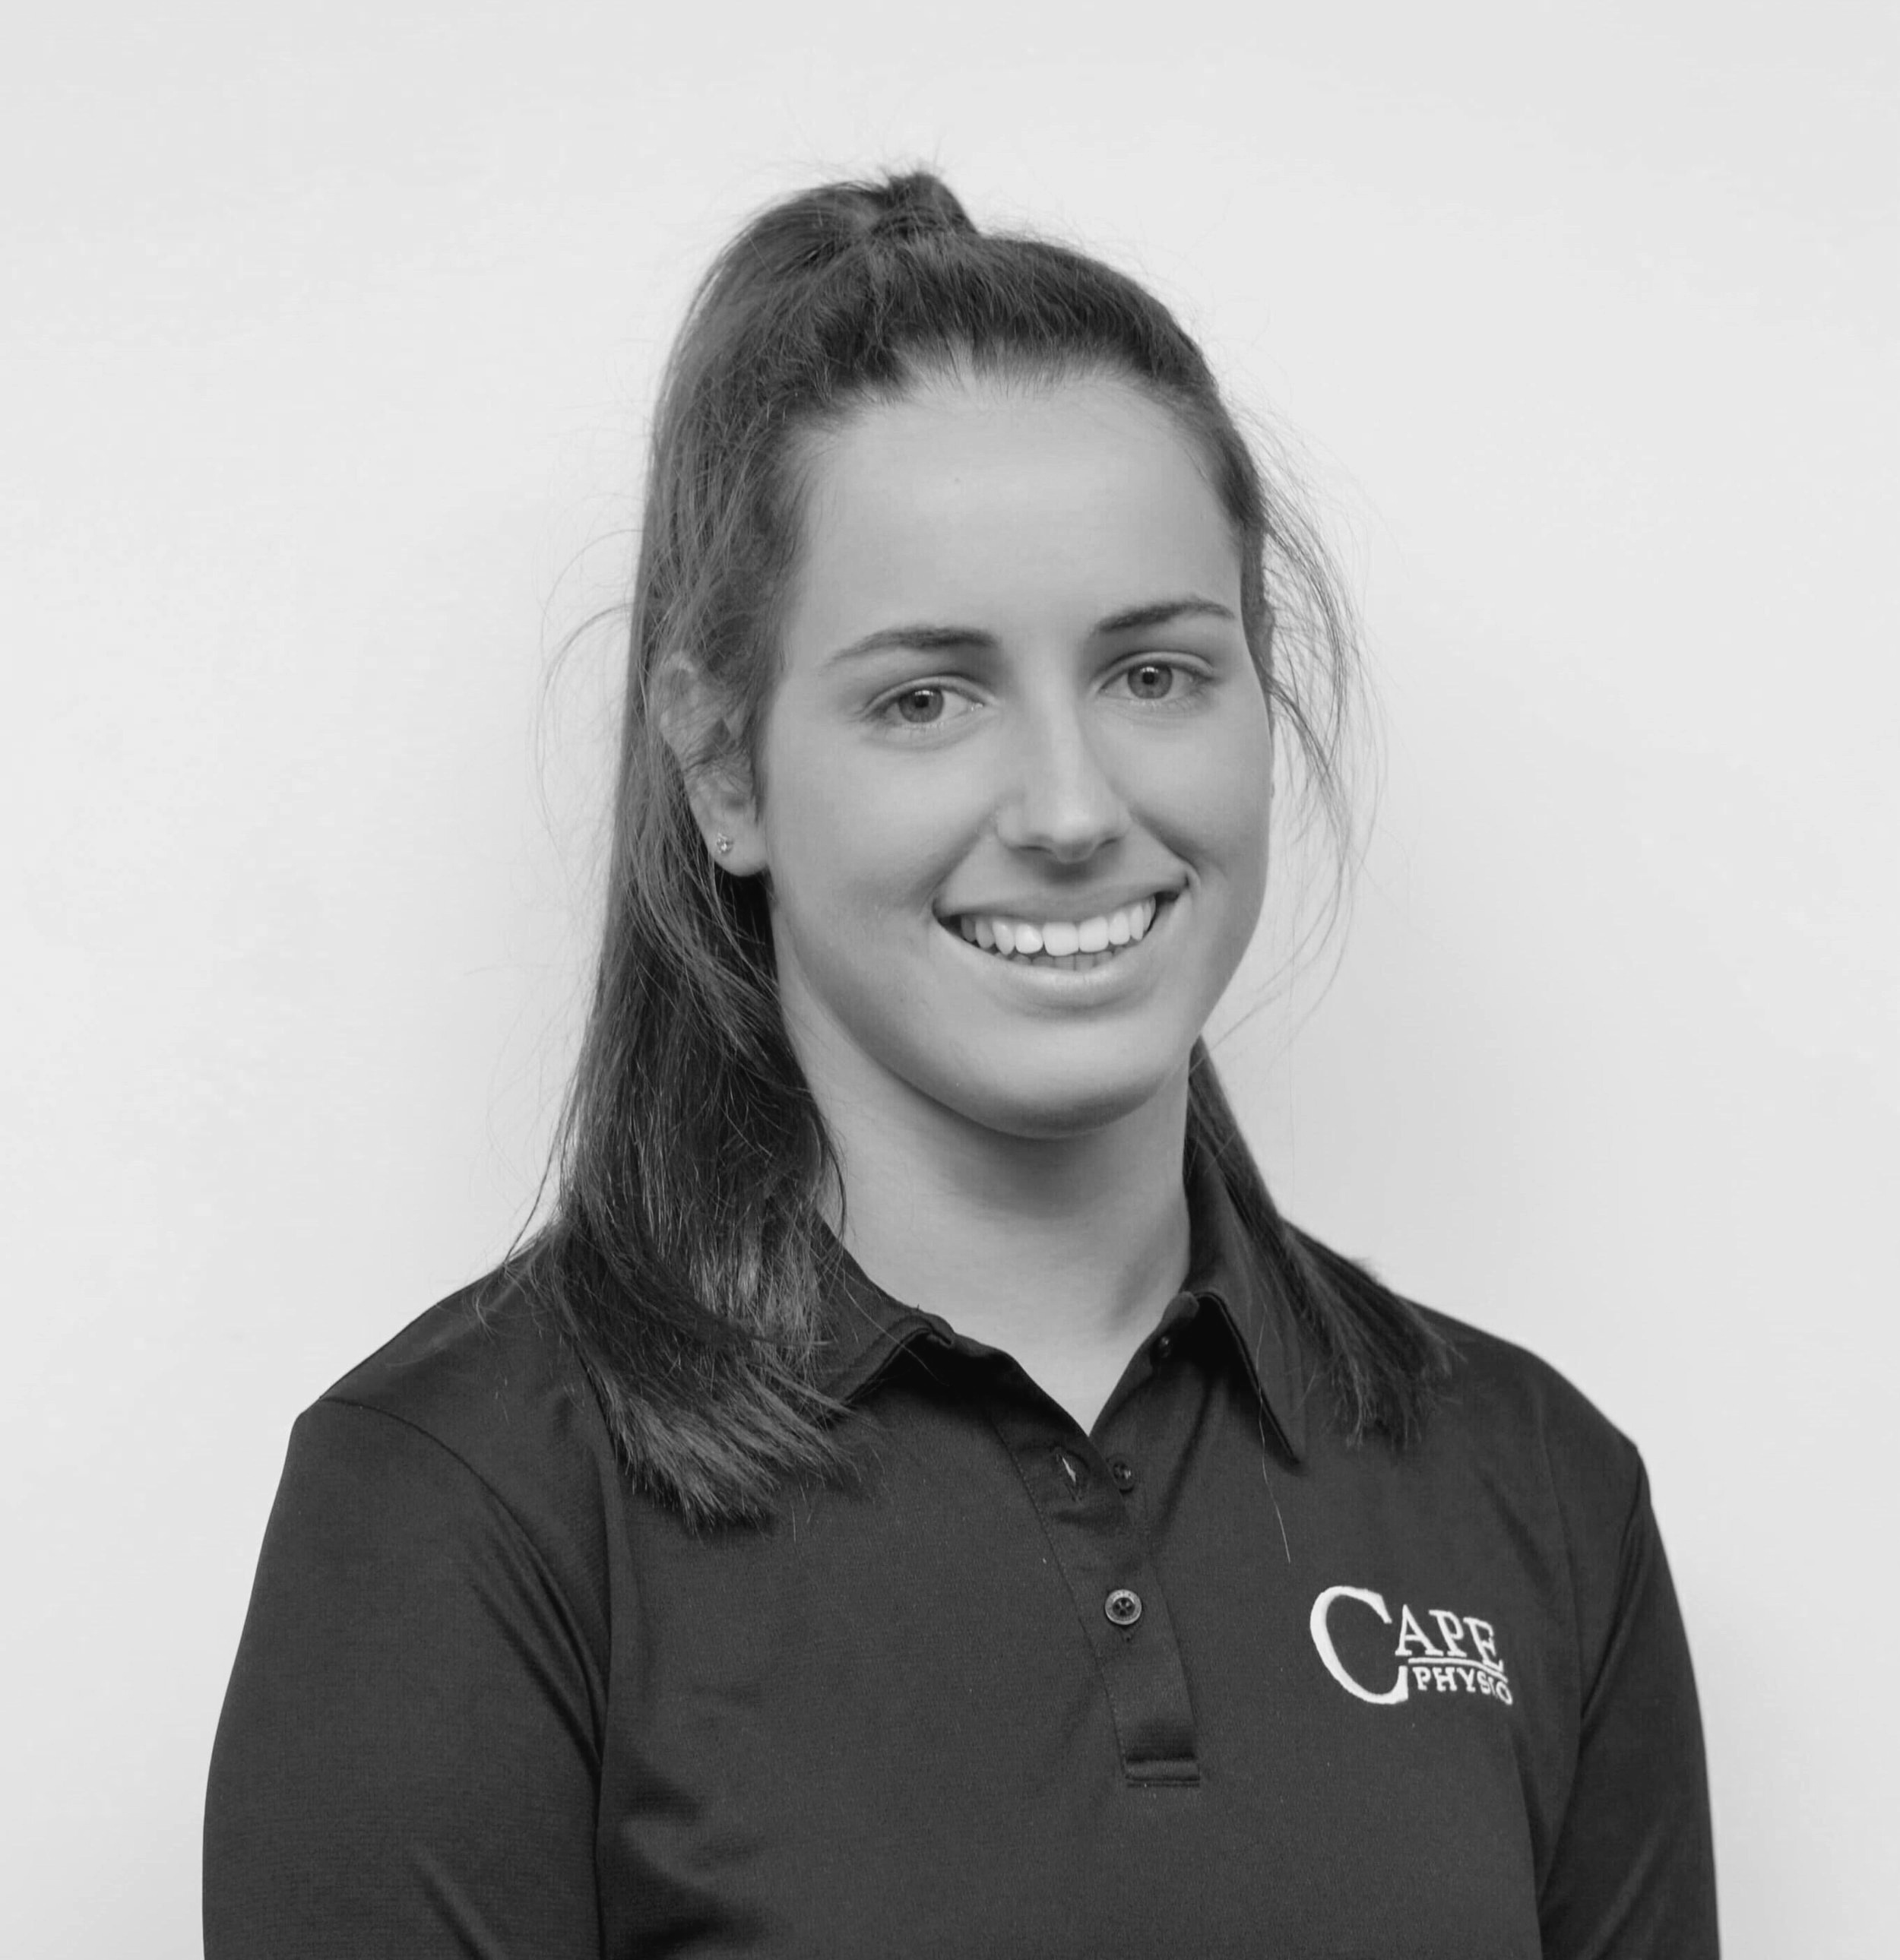 Sophie Martin - Physiotherapist   Sophie grew up on a sheep and beef farm in Manawatu, before heading to Otago to study Physiotherapy. She graduated from University of Otago in 2018 and now enjoying the warmth of the sunny Hawkes Bay. She's also an umpire for Hawkes Bay Netball in her spare time.